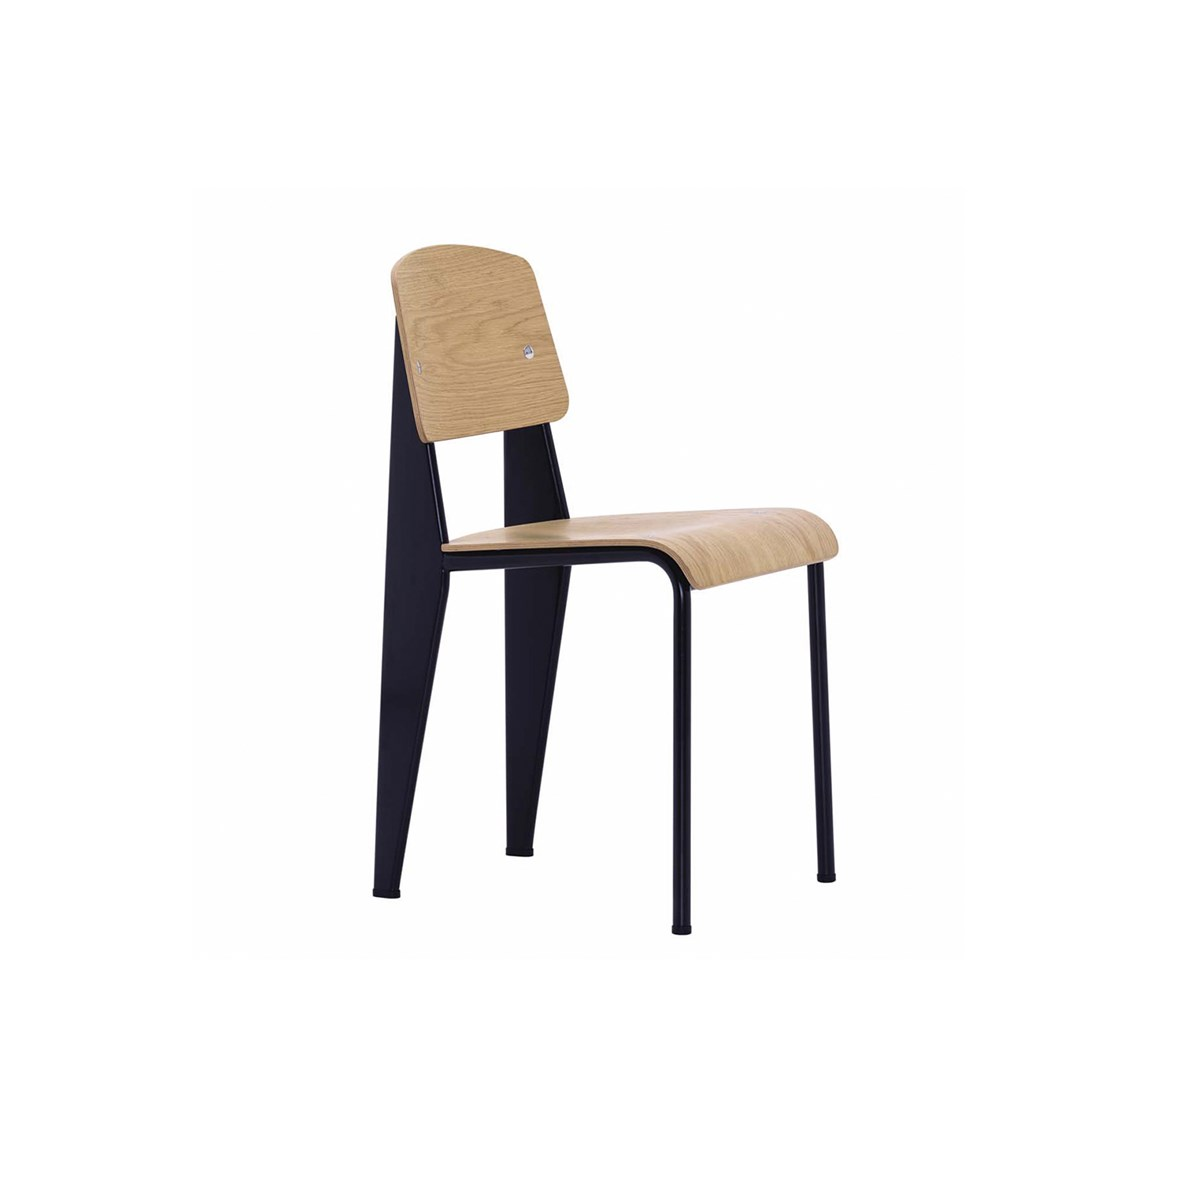 Vitra-Jean-Prouve-Standard-Chair-Matisse-1